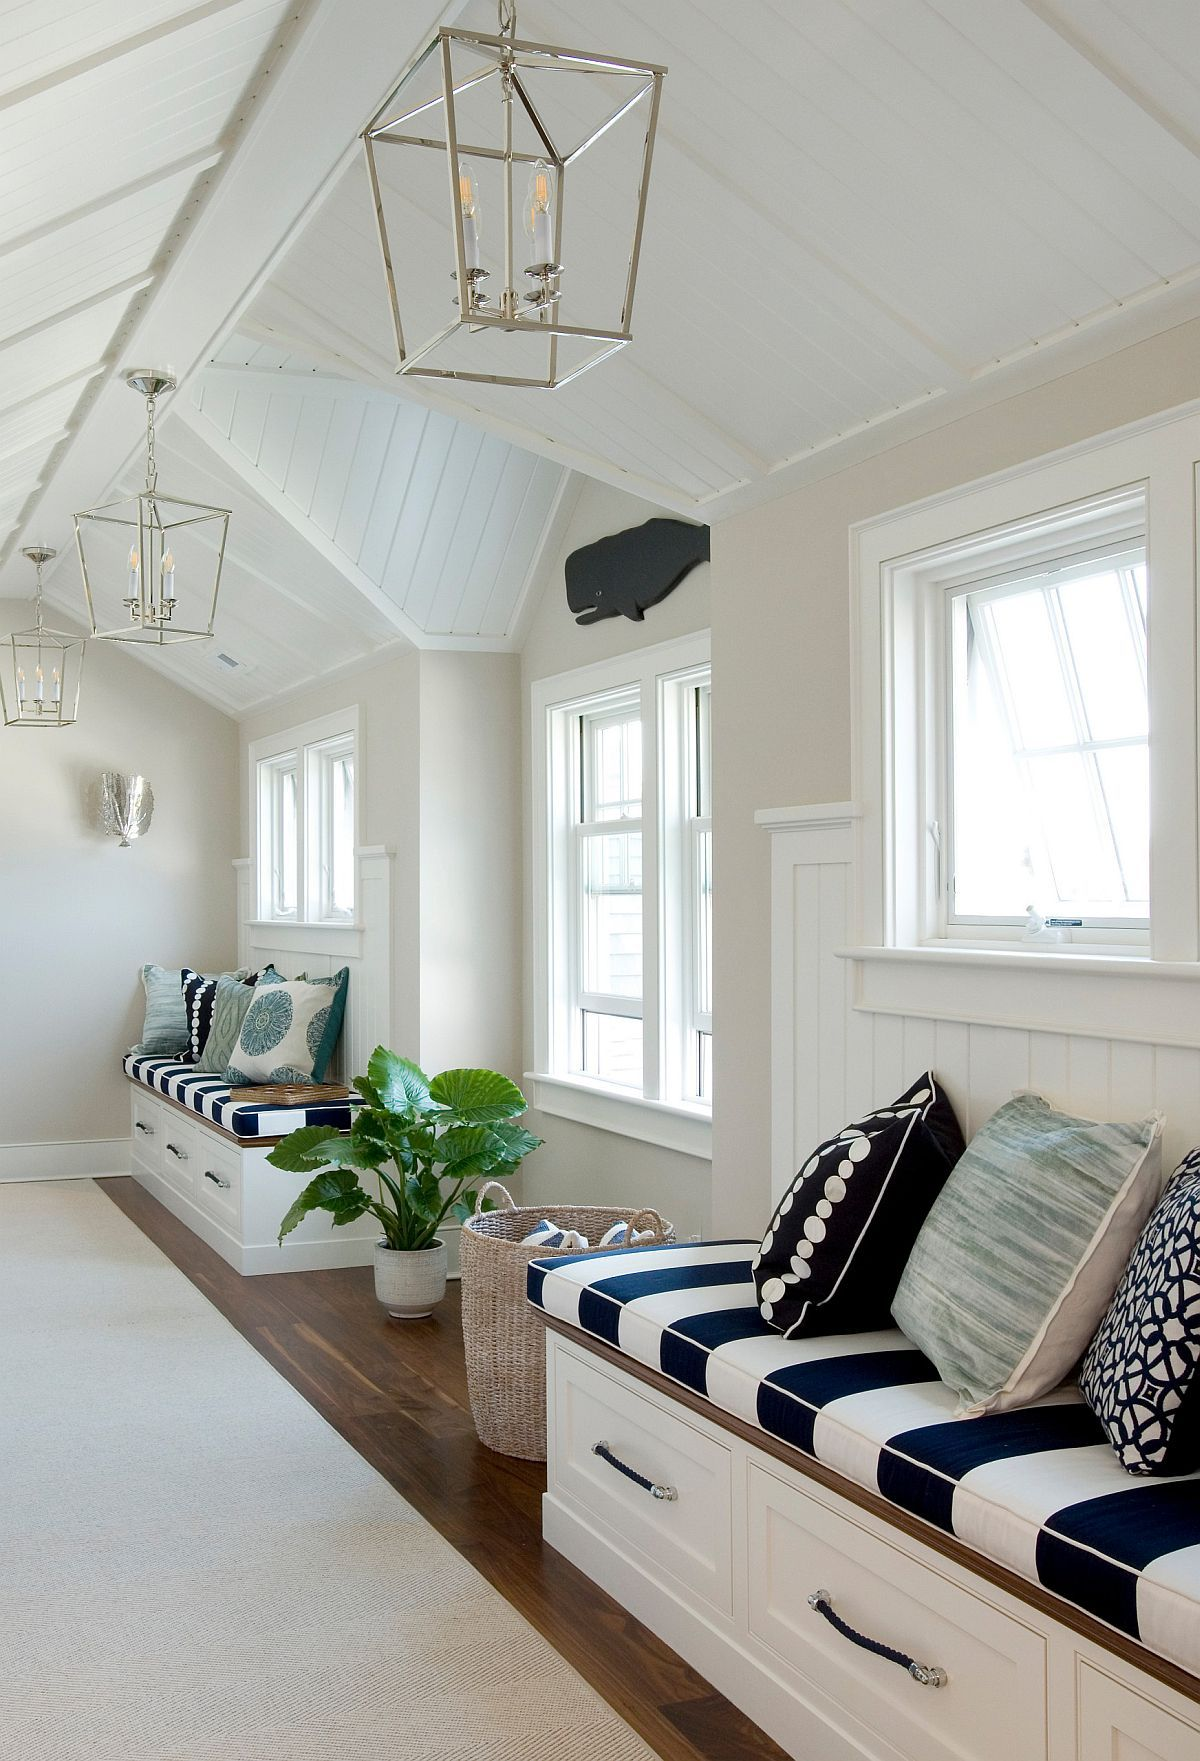 Making Most Of The Hallway Decorating Ideas That Maximize Space And Style In 2020 Decor Storage Spaces Hallway Decorating